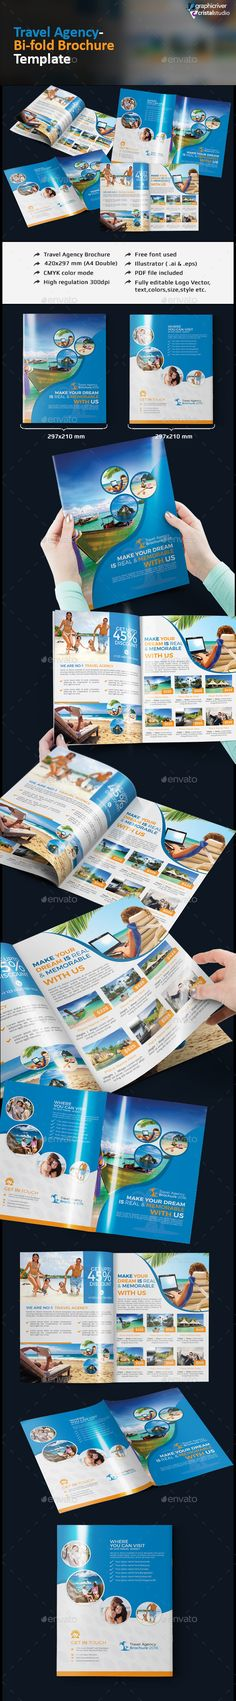 buy brochure templates - tourism service trifold brochure template tri fold